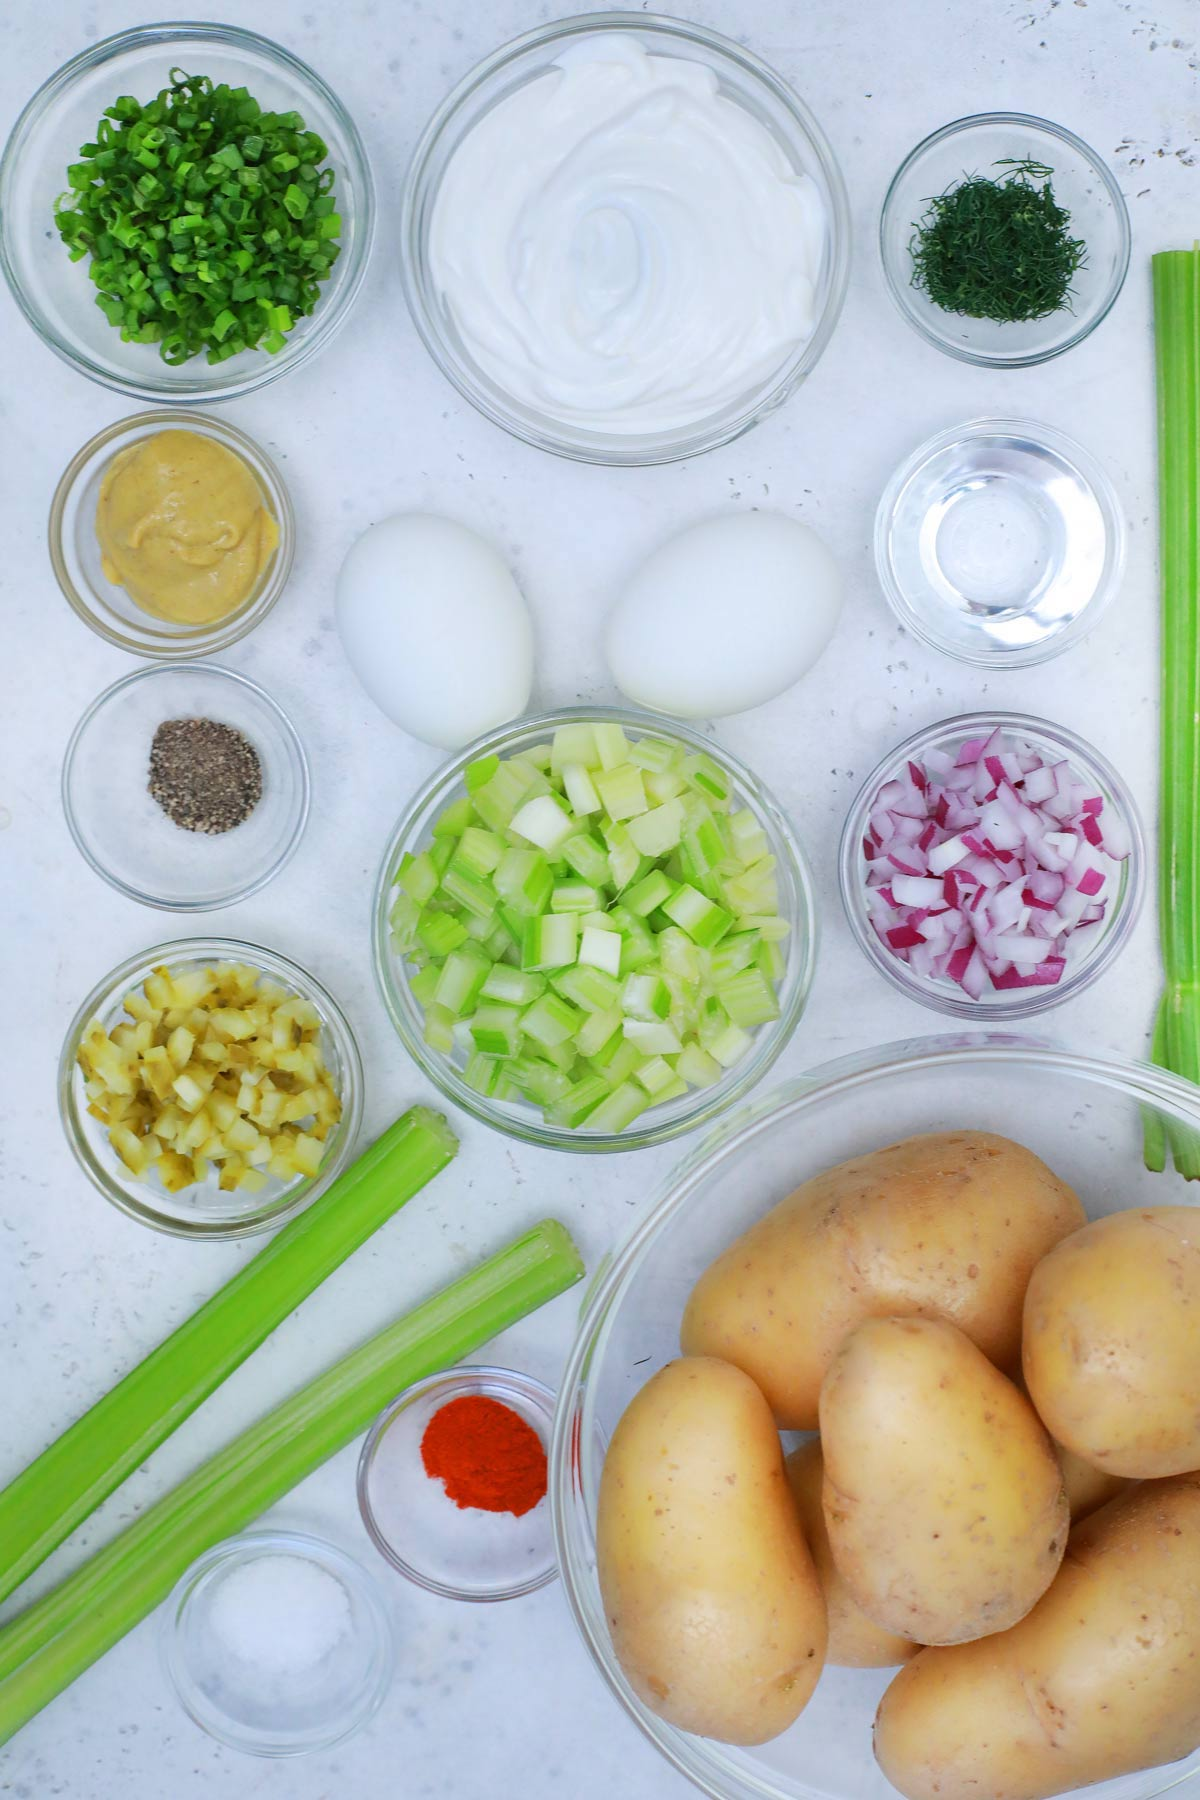 American Potato salad ingredients